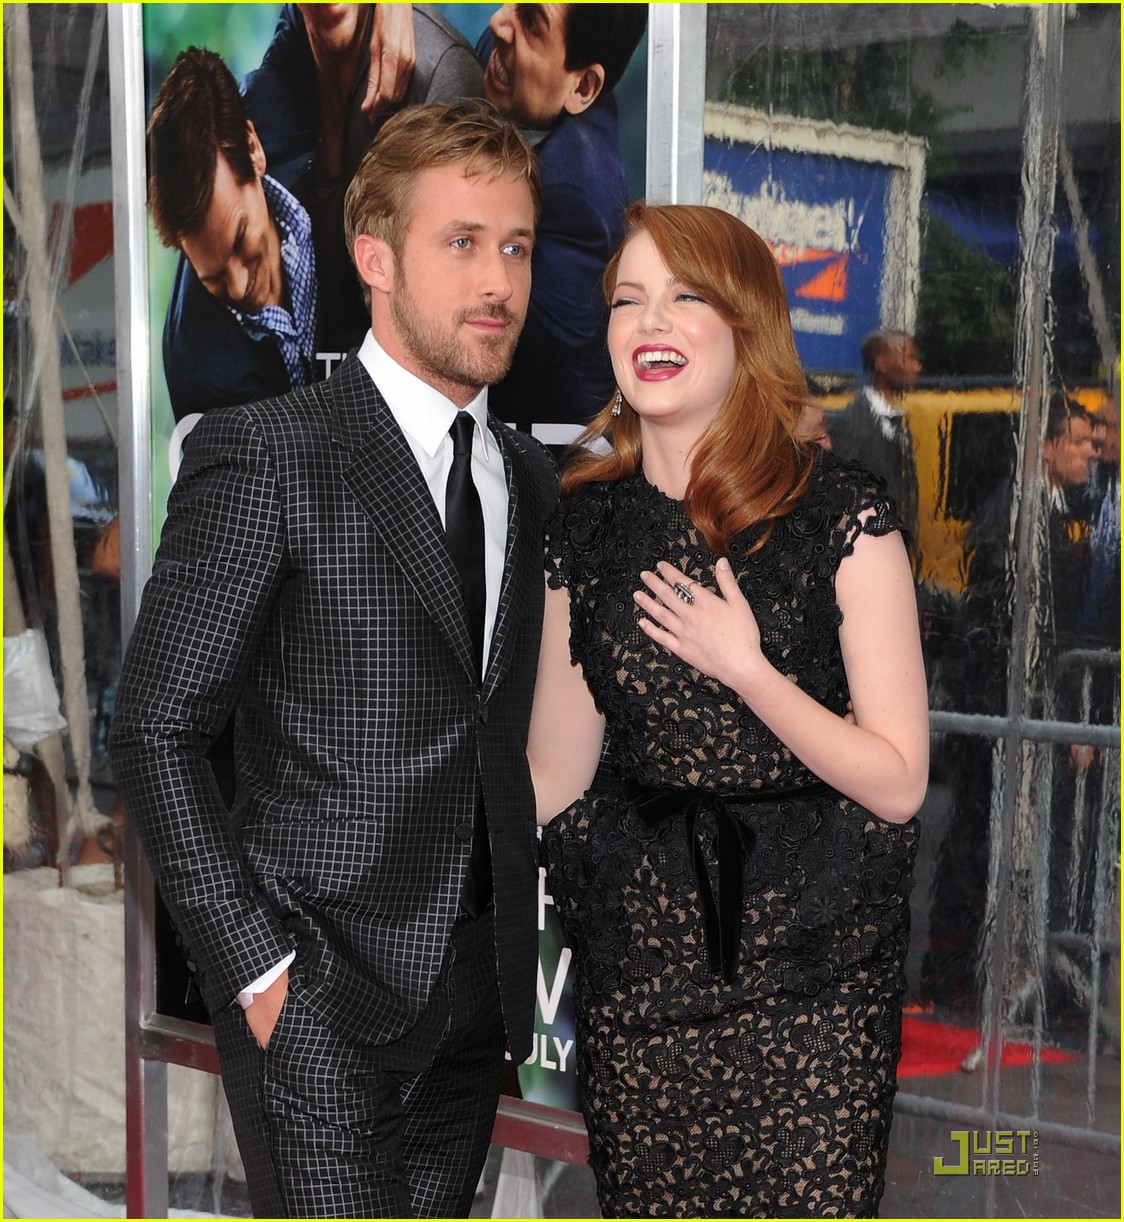 Who is emma stone dating now